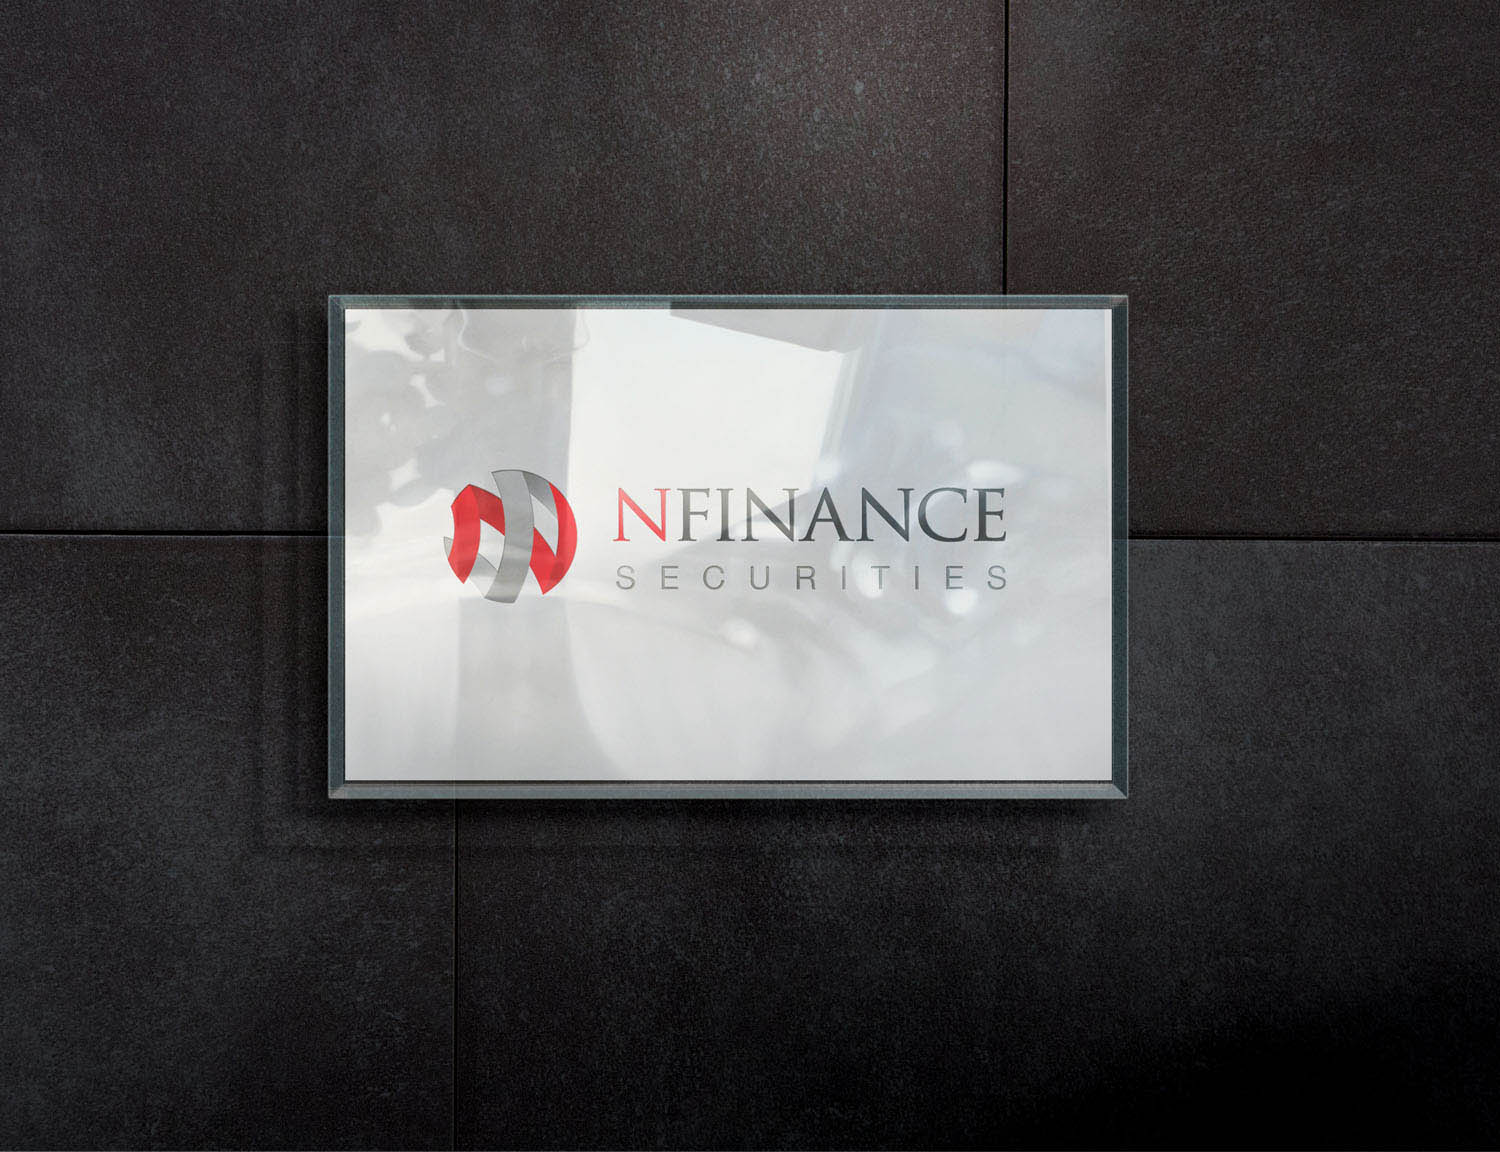 nfinance-logo